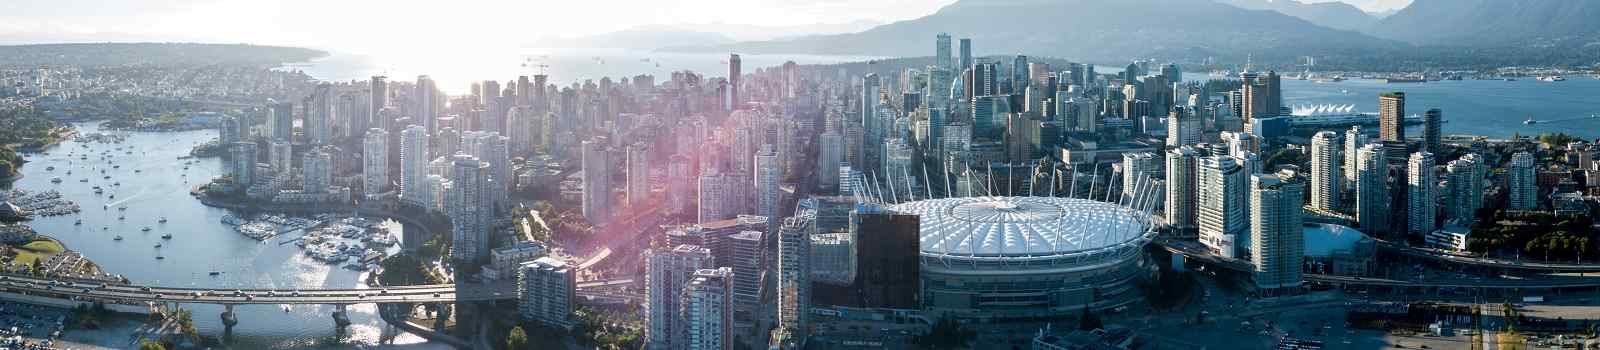 CAD-MT-COUNTRY Vancouver City Centre shutterstock 1171235374